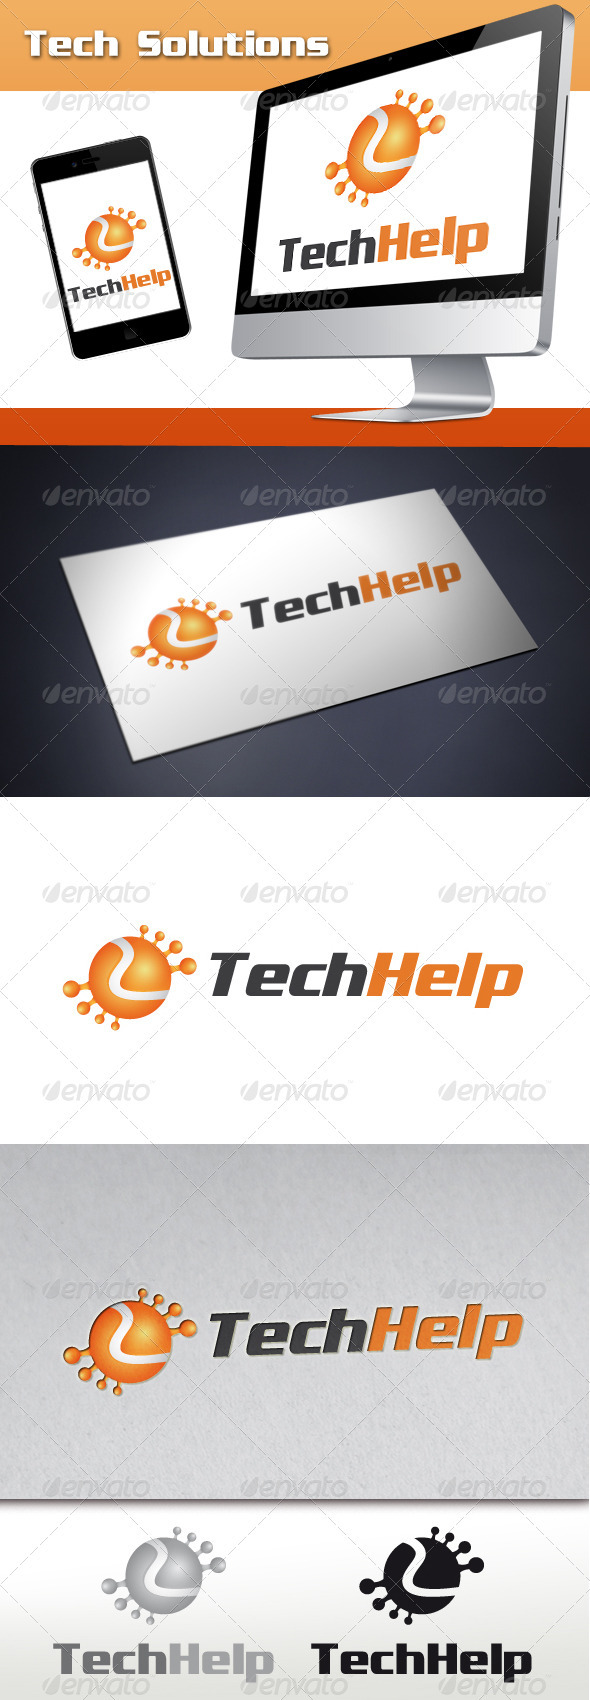 Tech Solutions Logo - Abstract Logo Templates